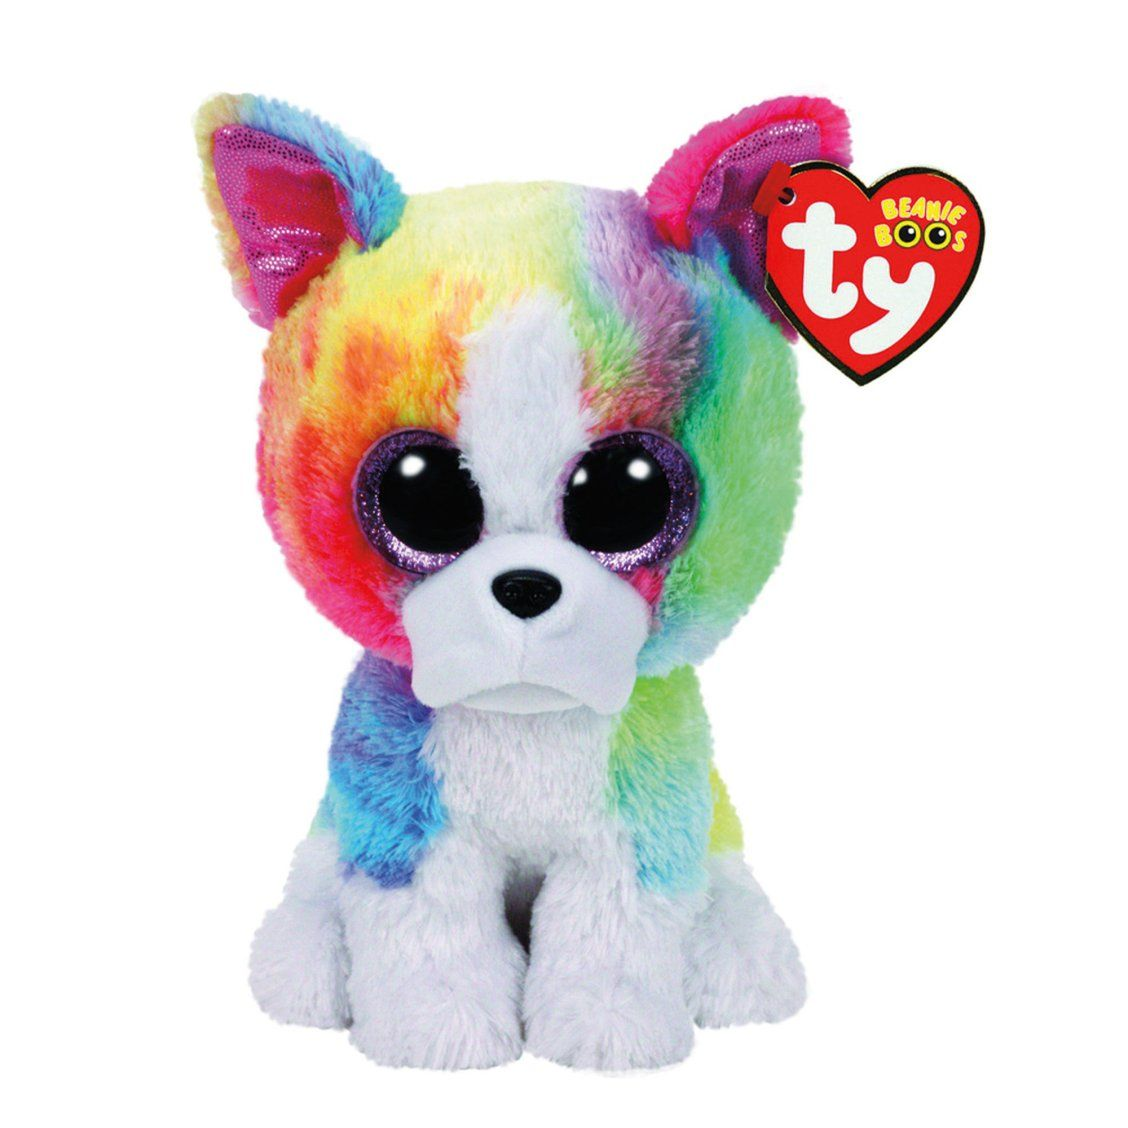 Ty Beanie Boo Small Isla The Rainbow Bulldog Plush Toy I Like To Hang Out With My Friends And Play Dress Up It S Ty Beanie Boos Beanie Boos Beanie Boo Dogs